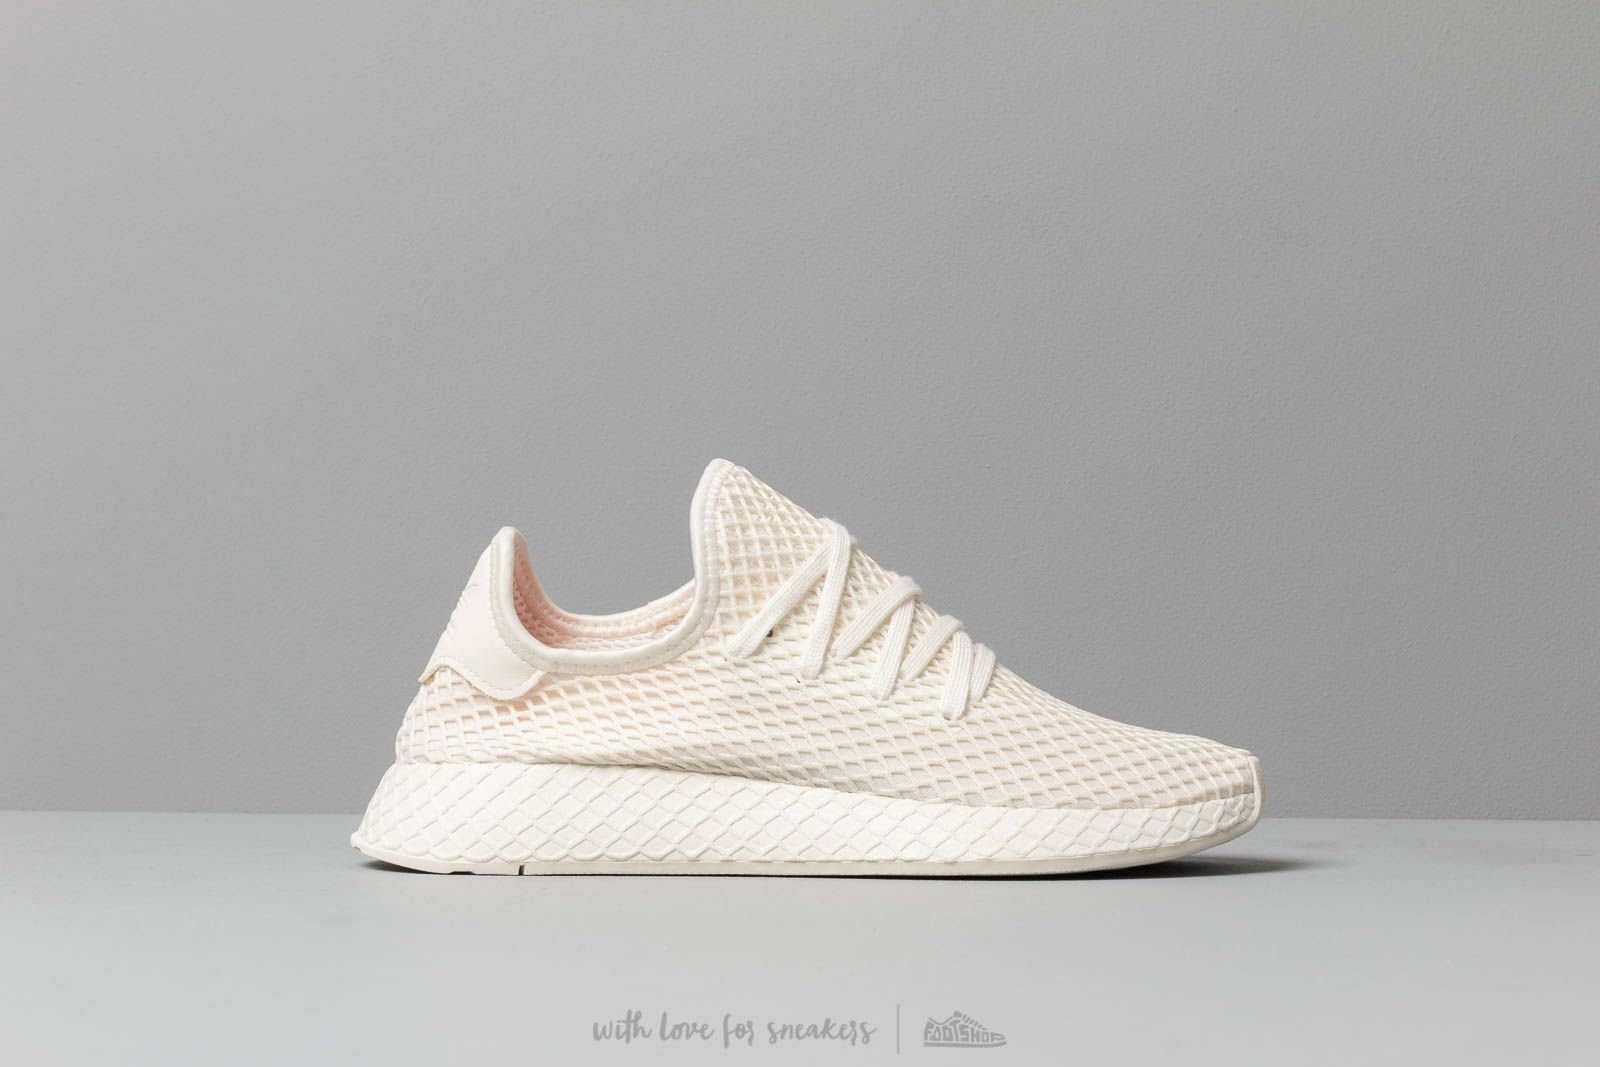 003a0d74318b2 adidas Deerupt Runner Off White  Ftw White  Shored at a great price  108 buy